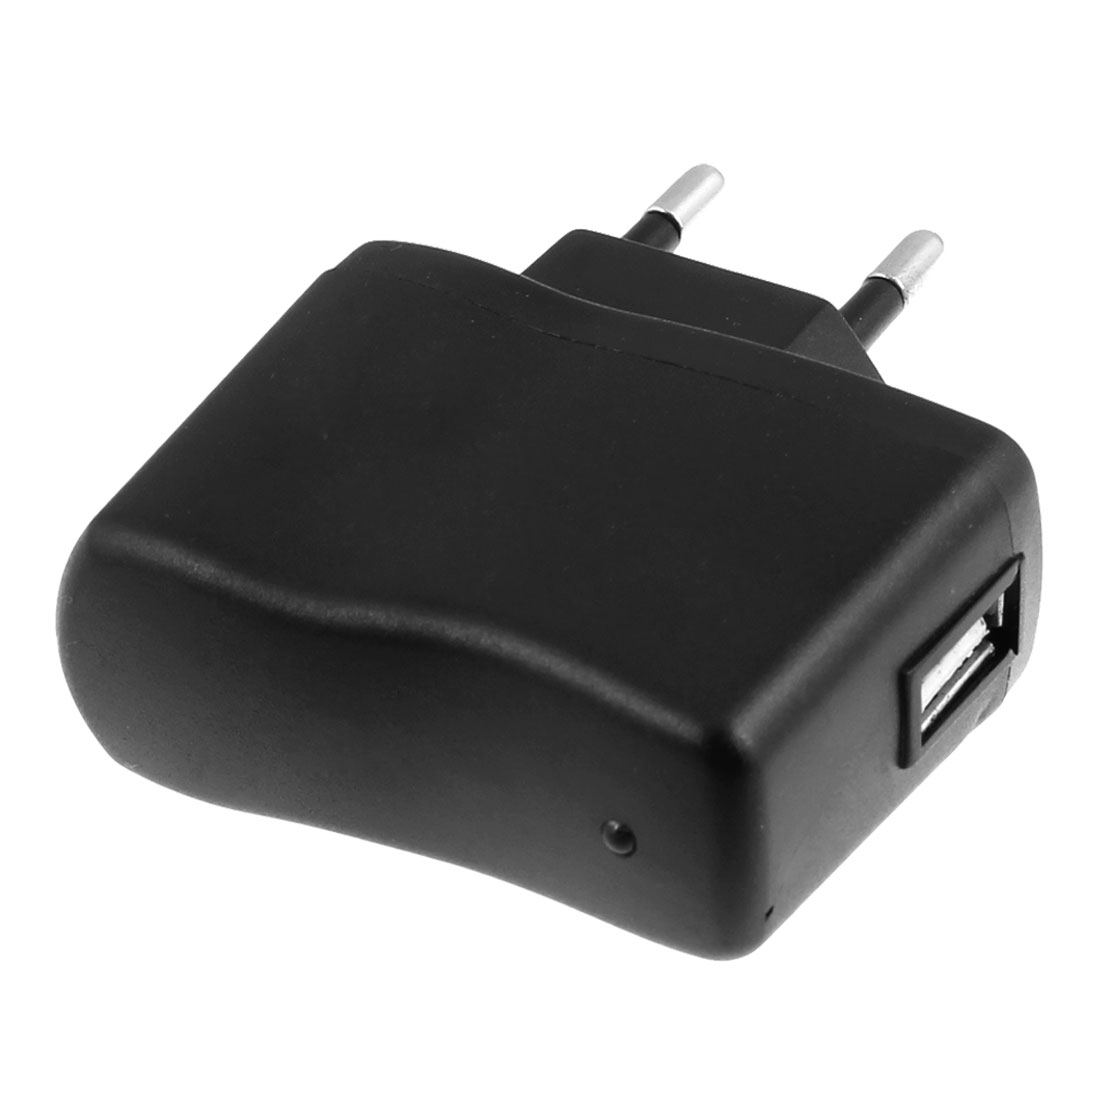 AC 110-240V 1000mA USB Port to EU Plug Black Charger Adaptor